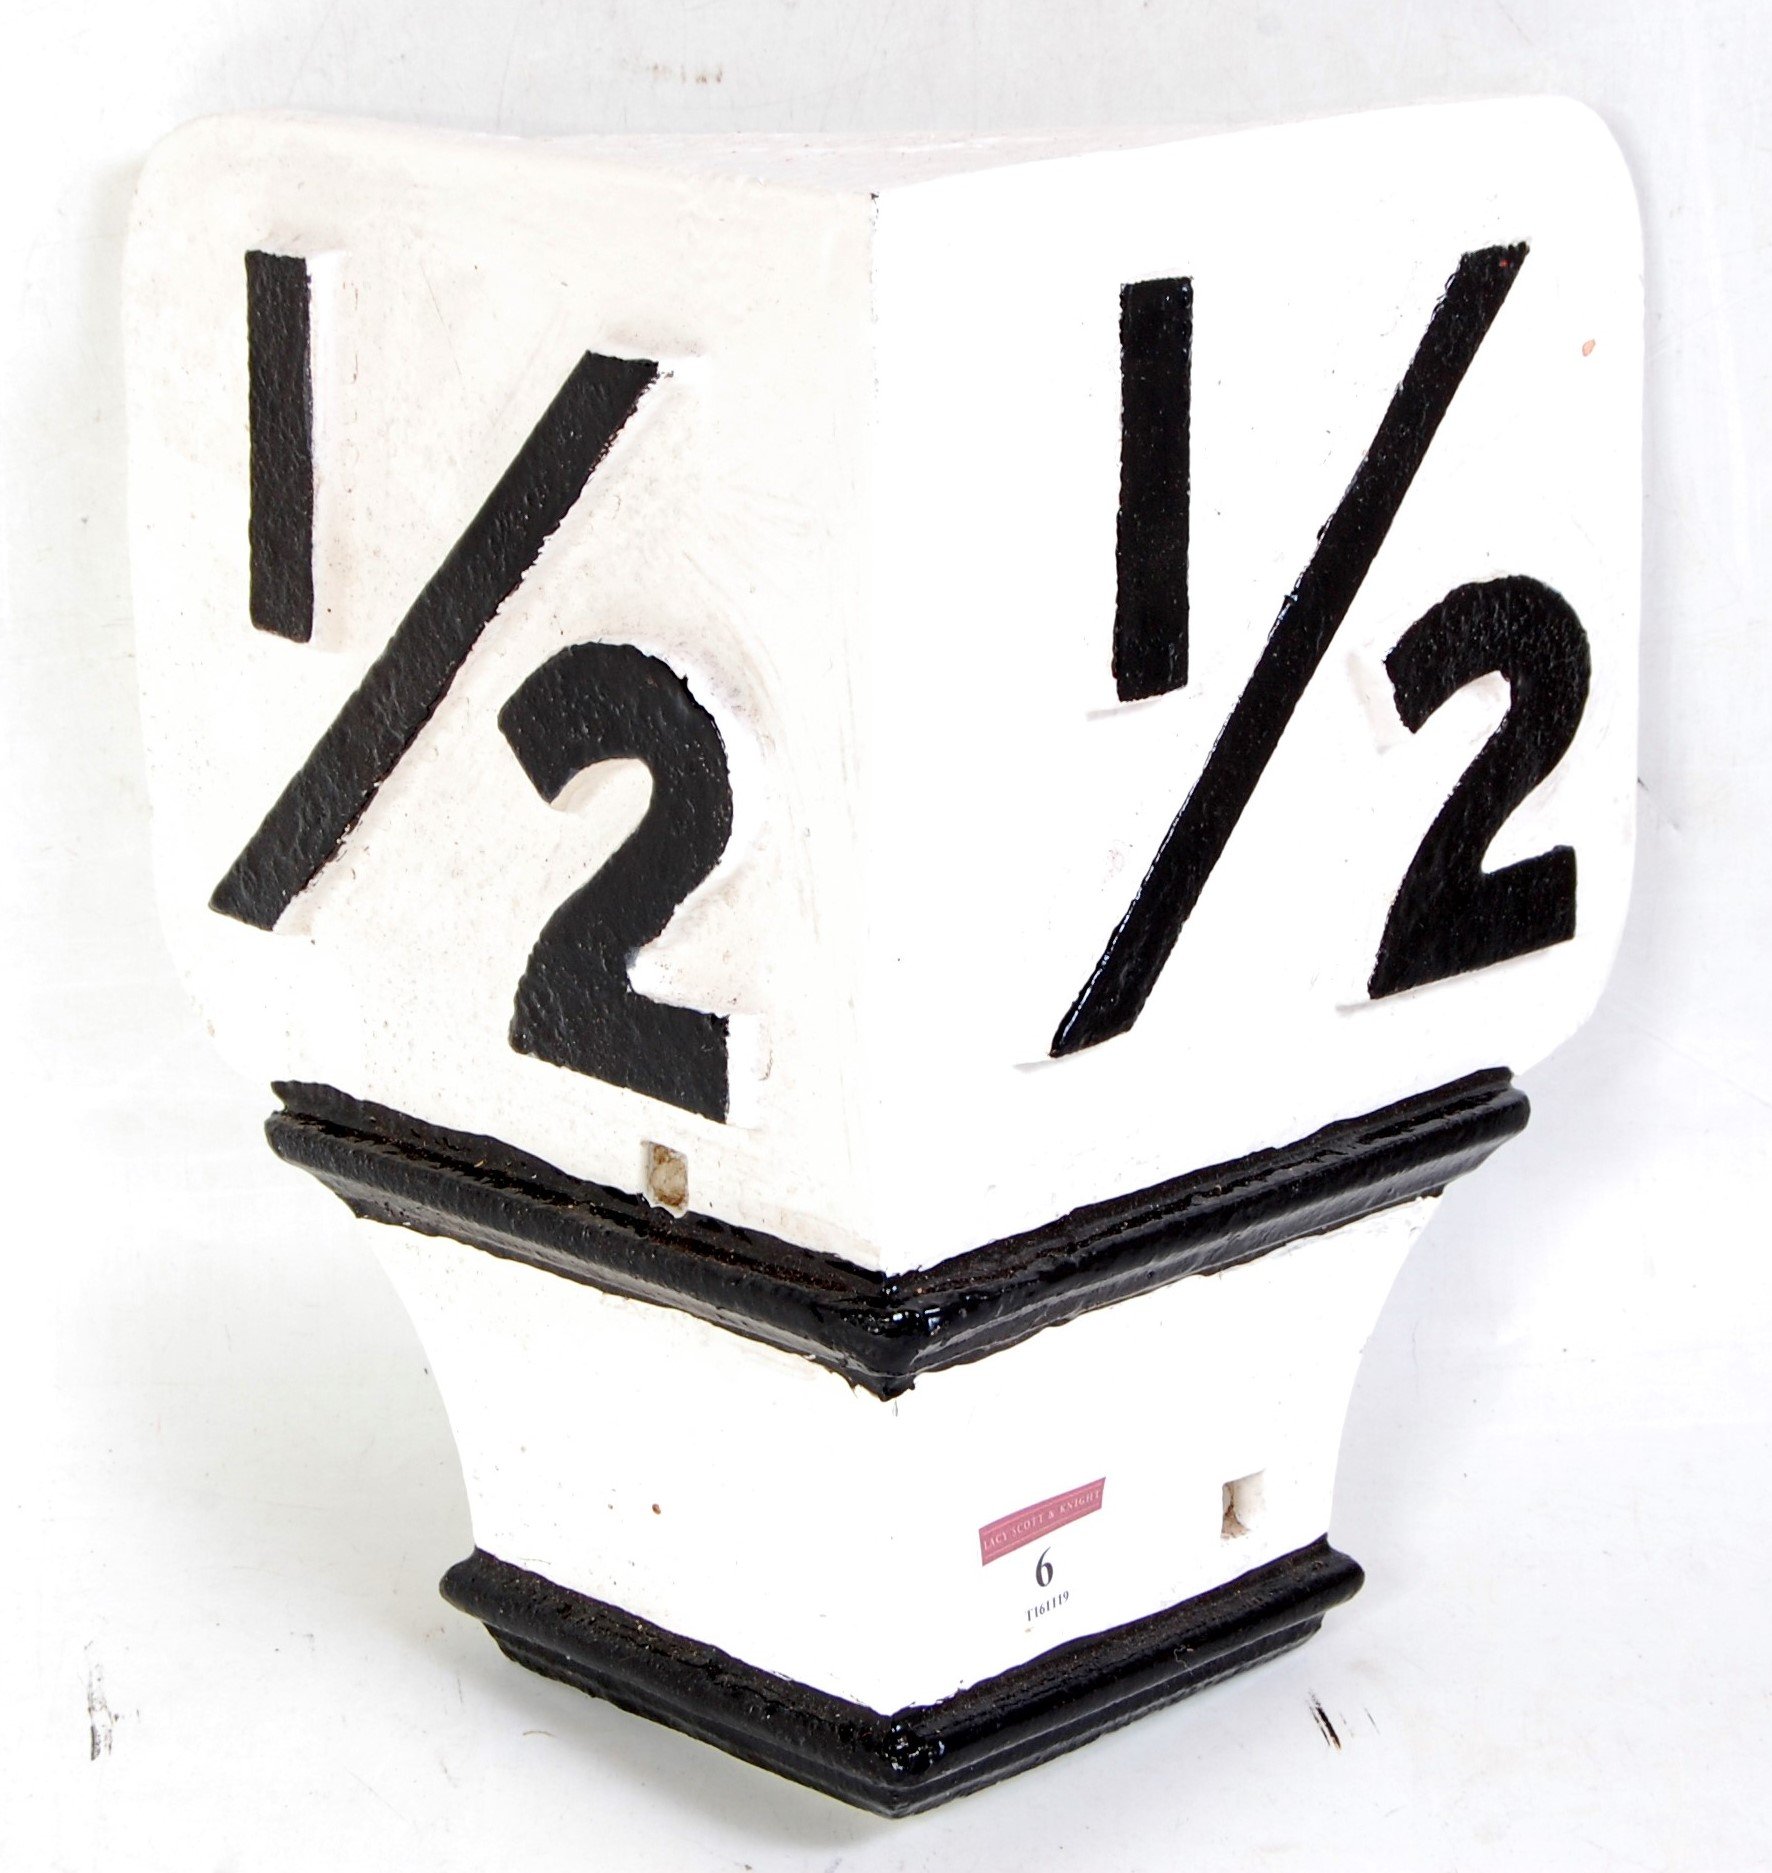 Lot 6 - An original cast iron railway half mile signpost top overpainted black on white